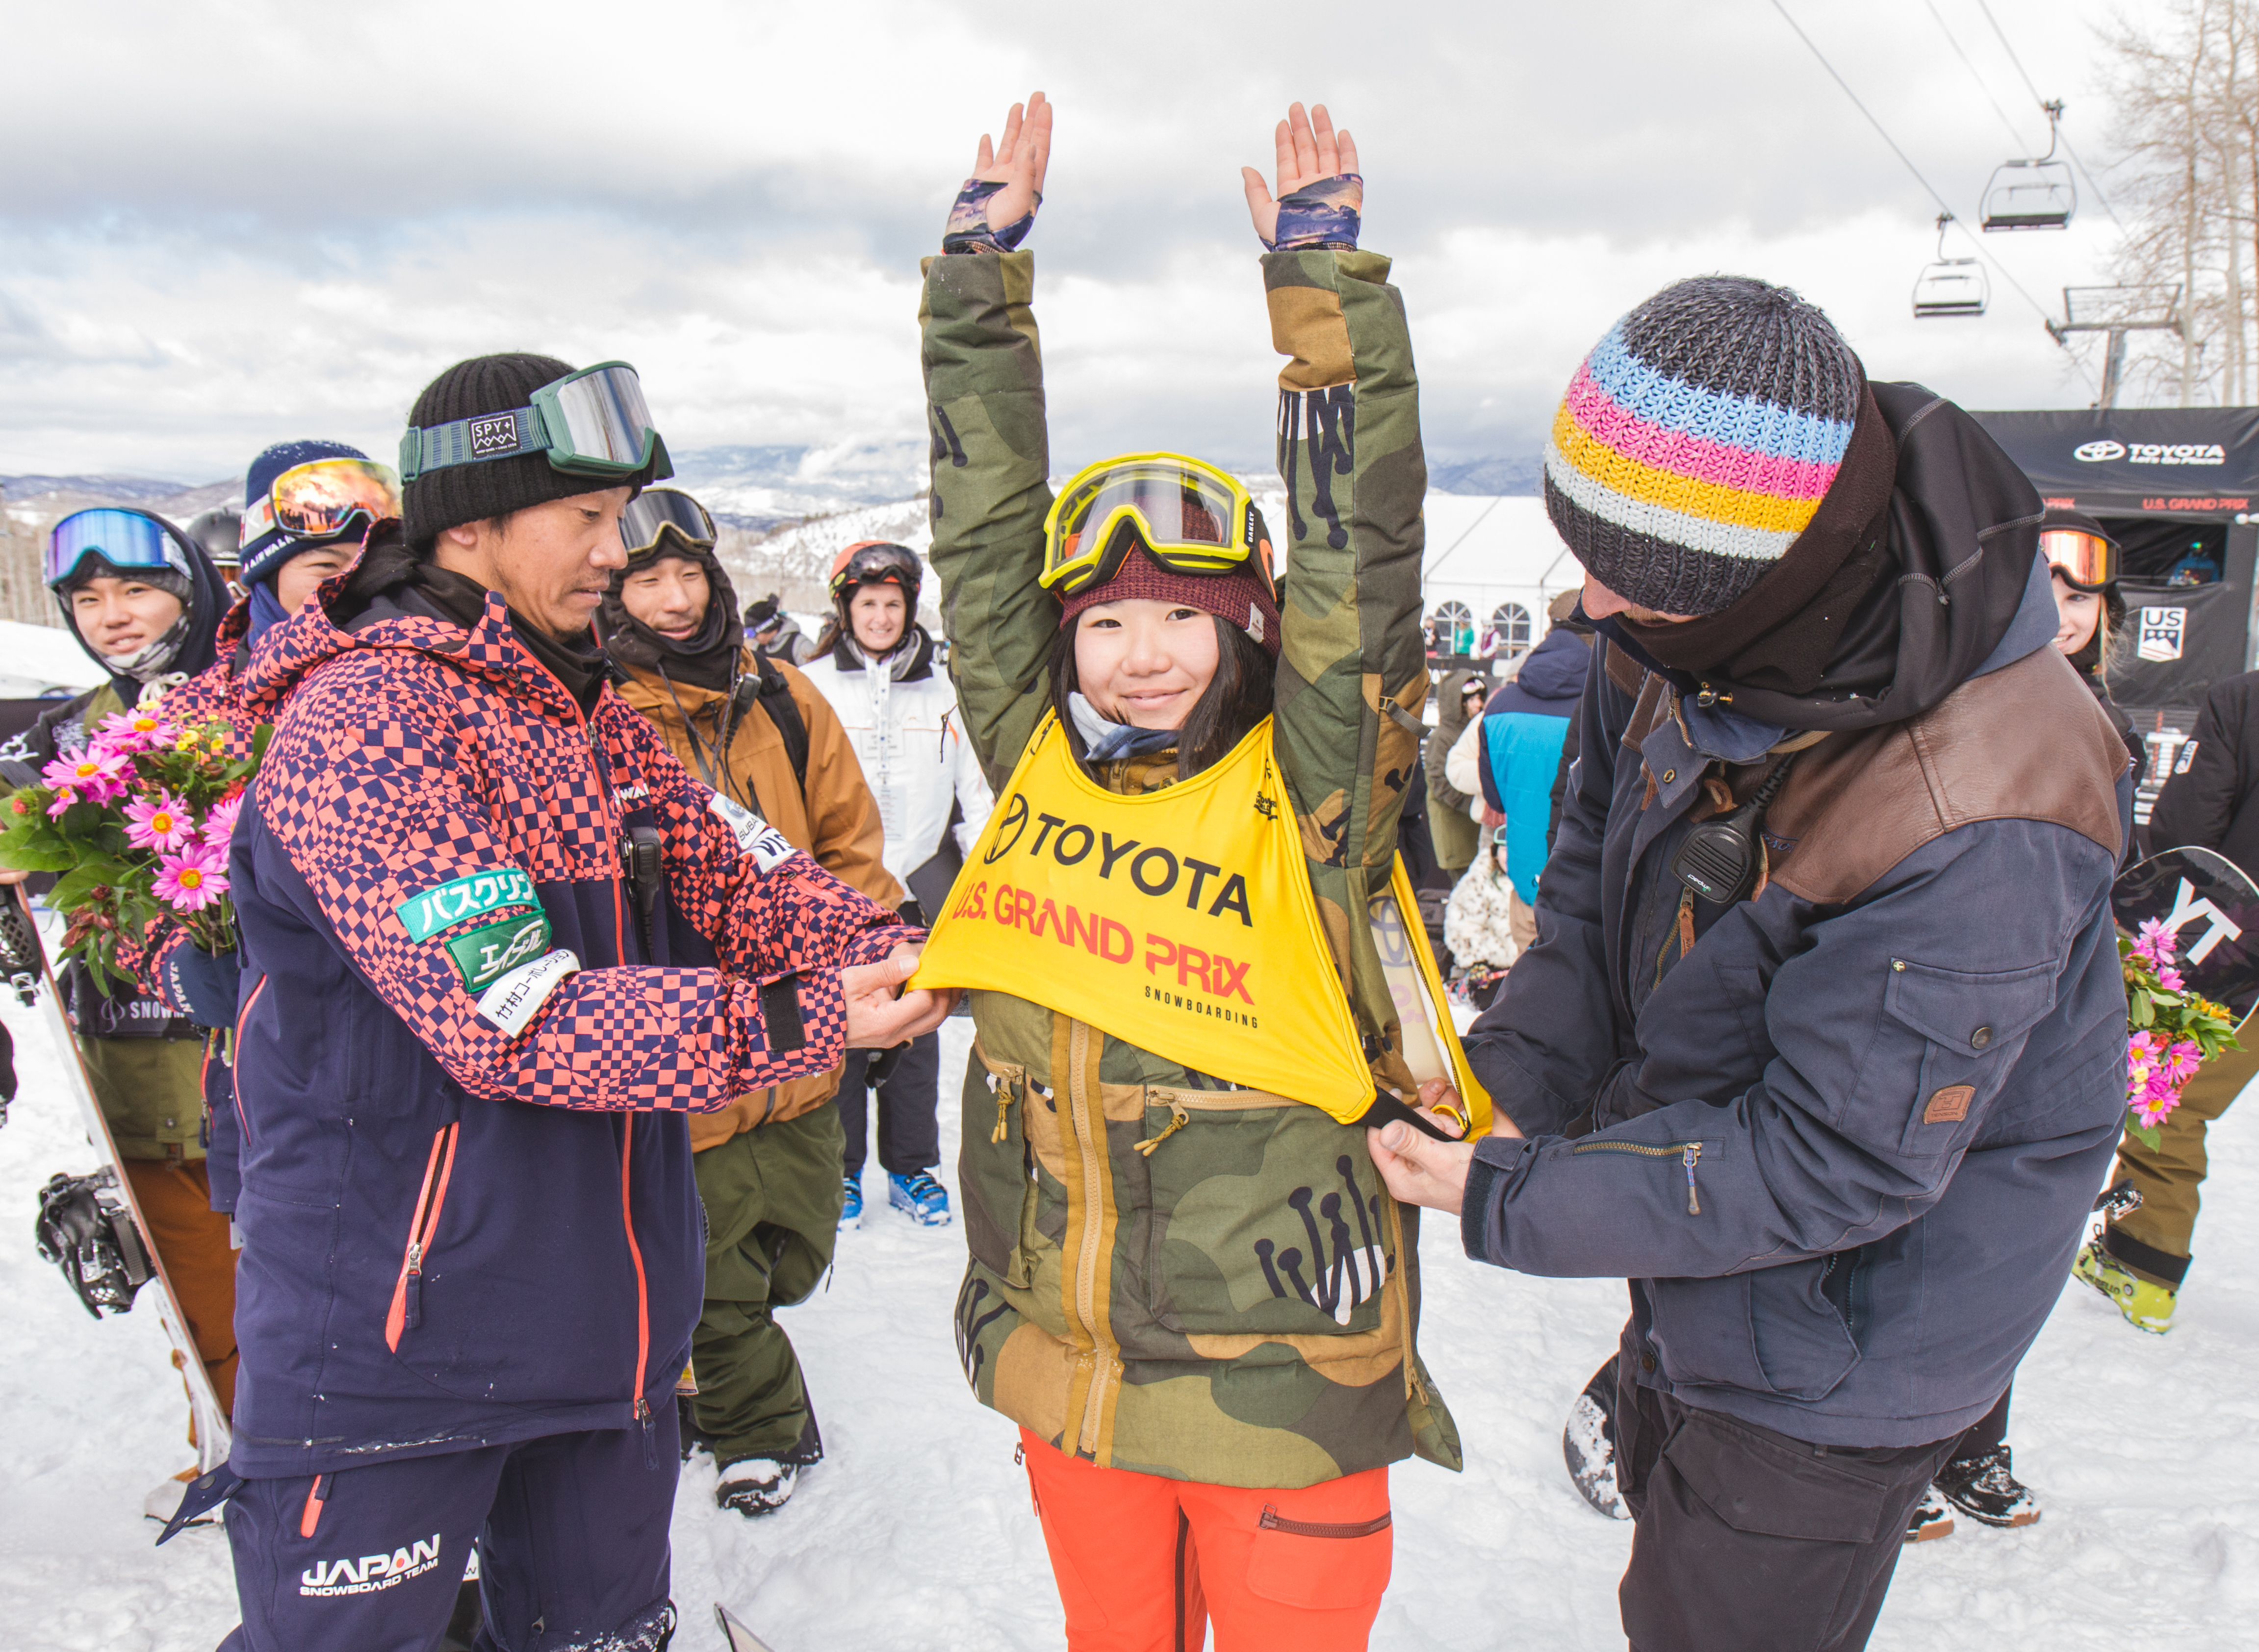 Leila Iwabuchi receiving the golden bib after her 2nd place at the US Grand Prix at Snowmass.